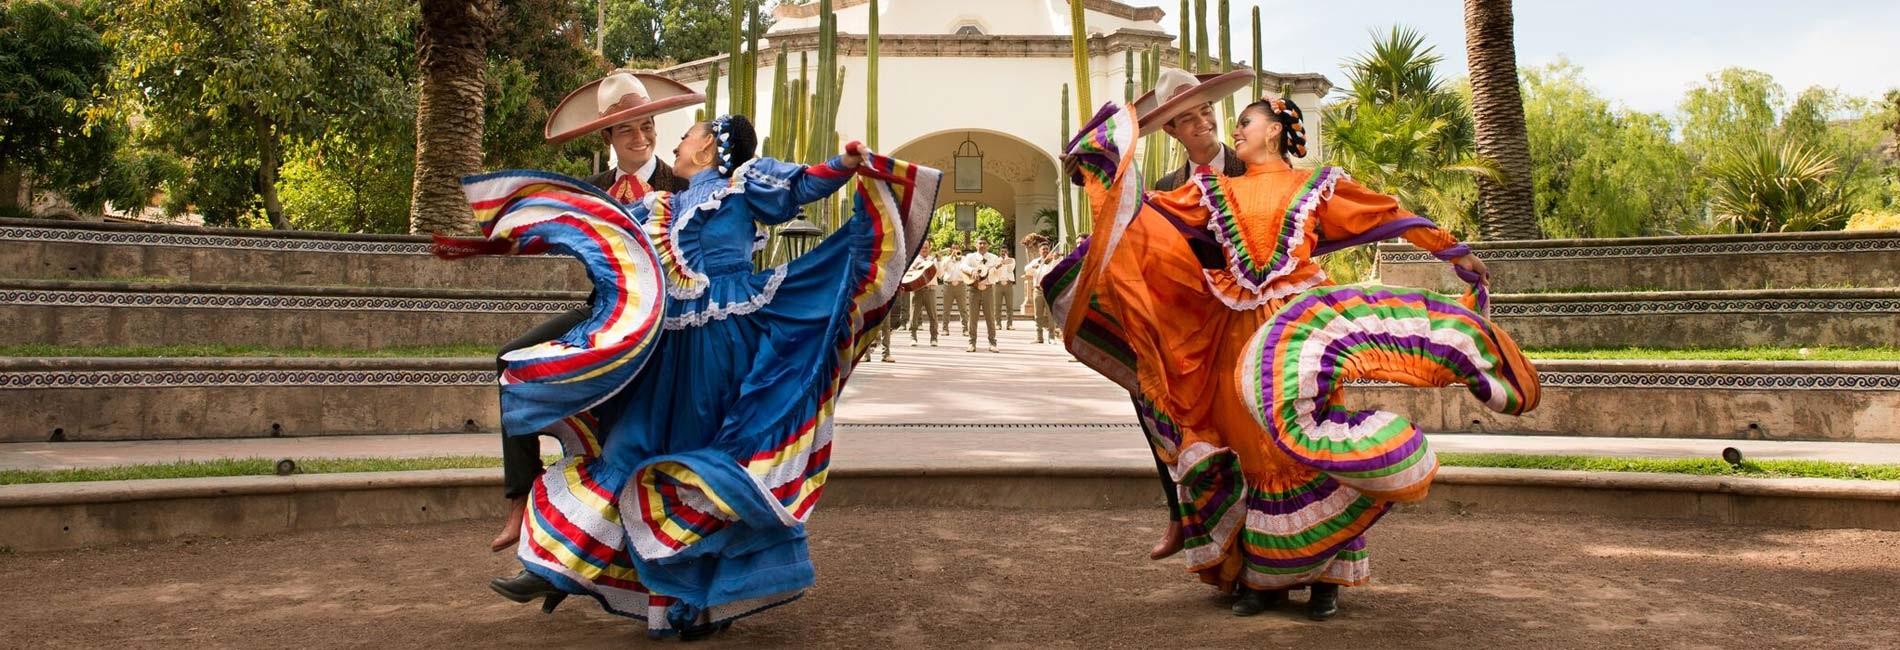 mexico-culture-travel